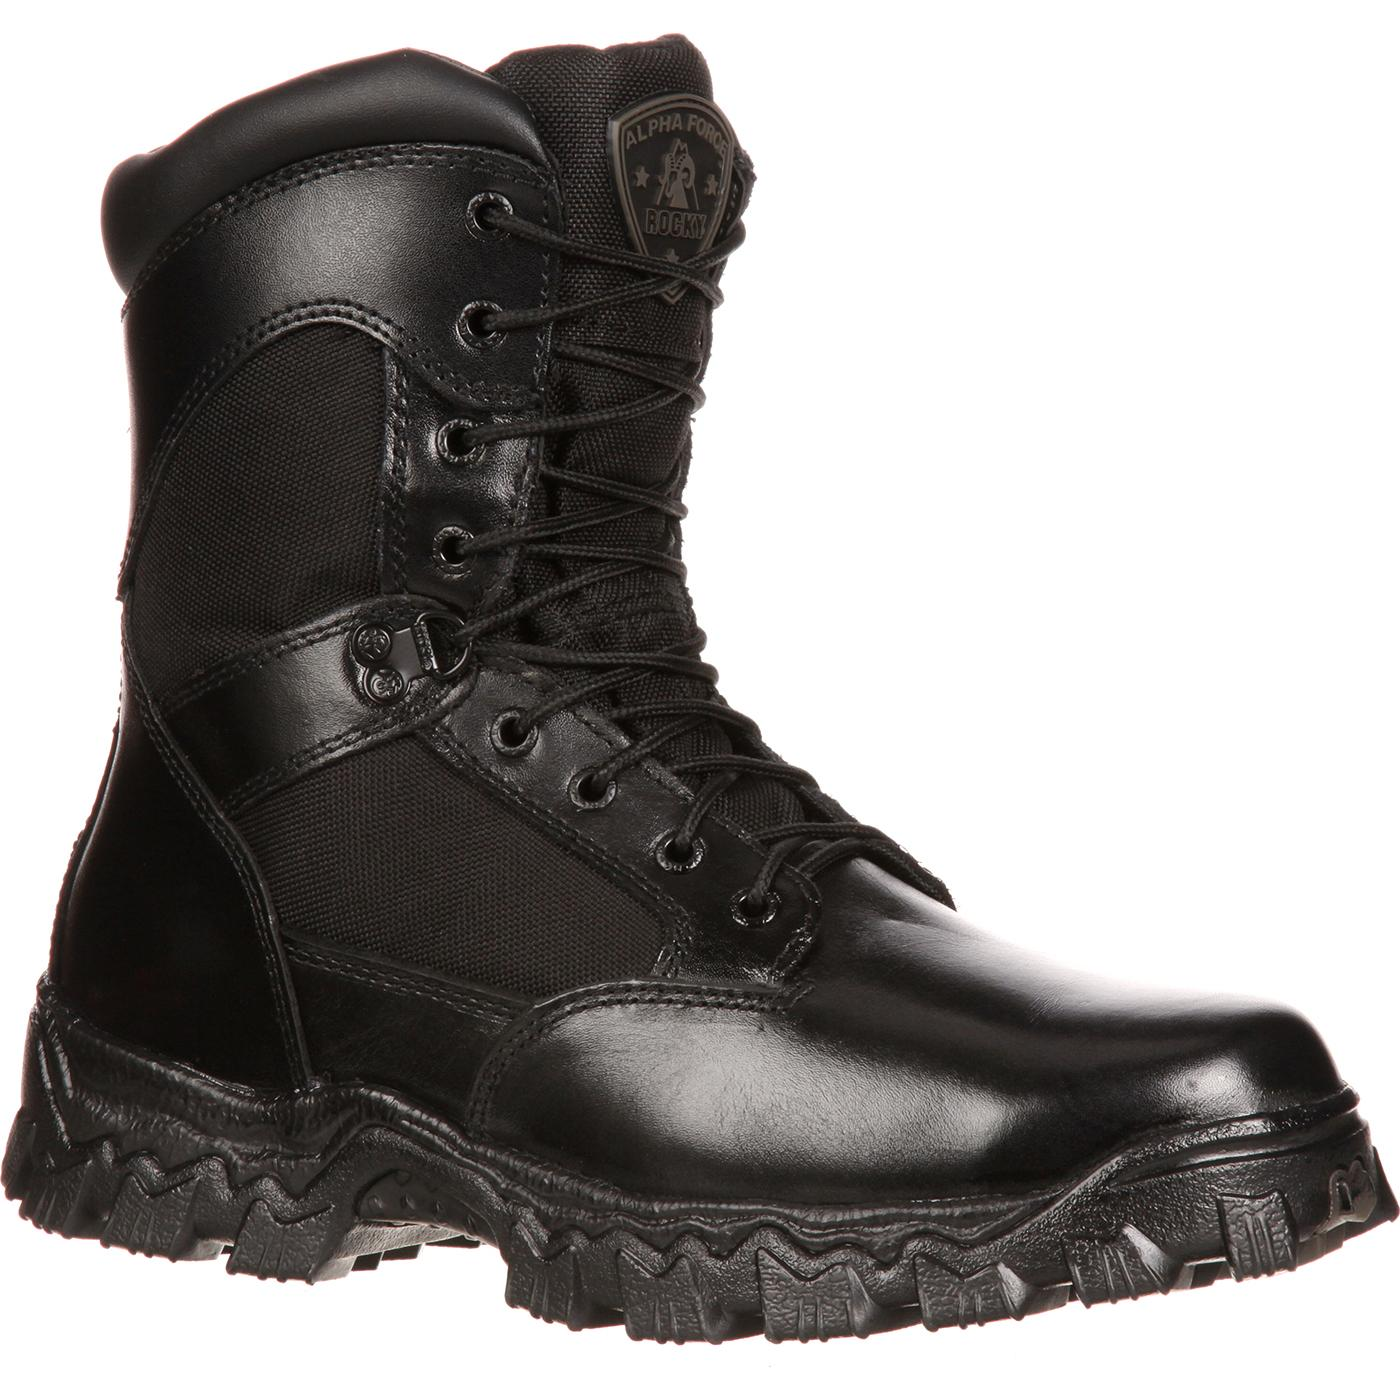 Rocky Alpha Force Composite Toe Waterproof Insulated Duty